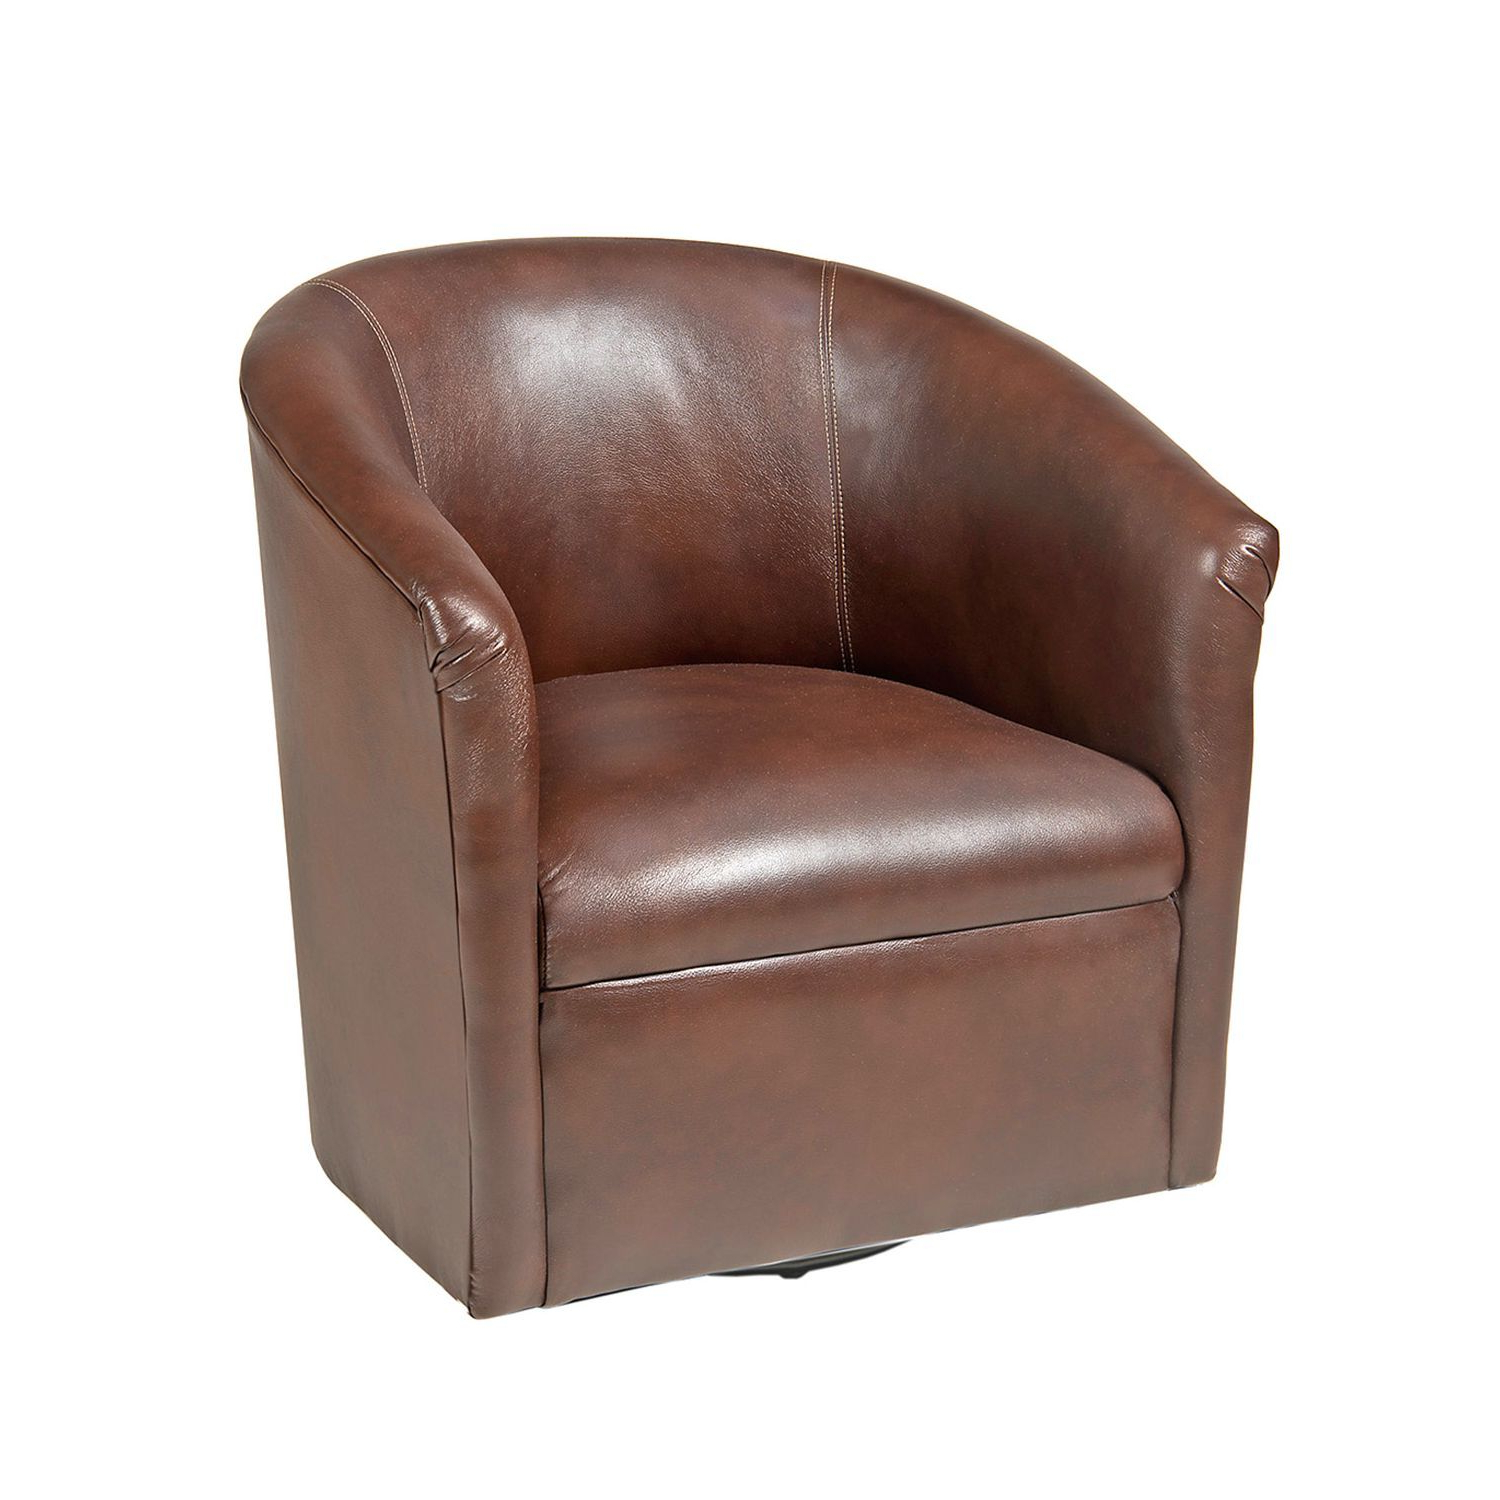 Pinterest Throughout Favorite Devon Ii Swivel Accent Chairs (View 3 of 20)